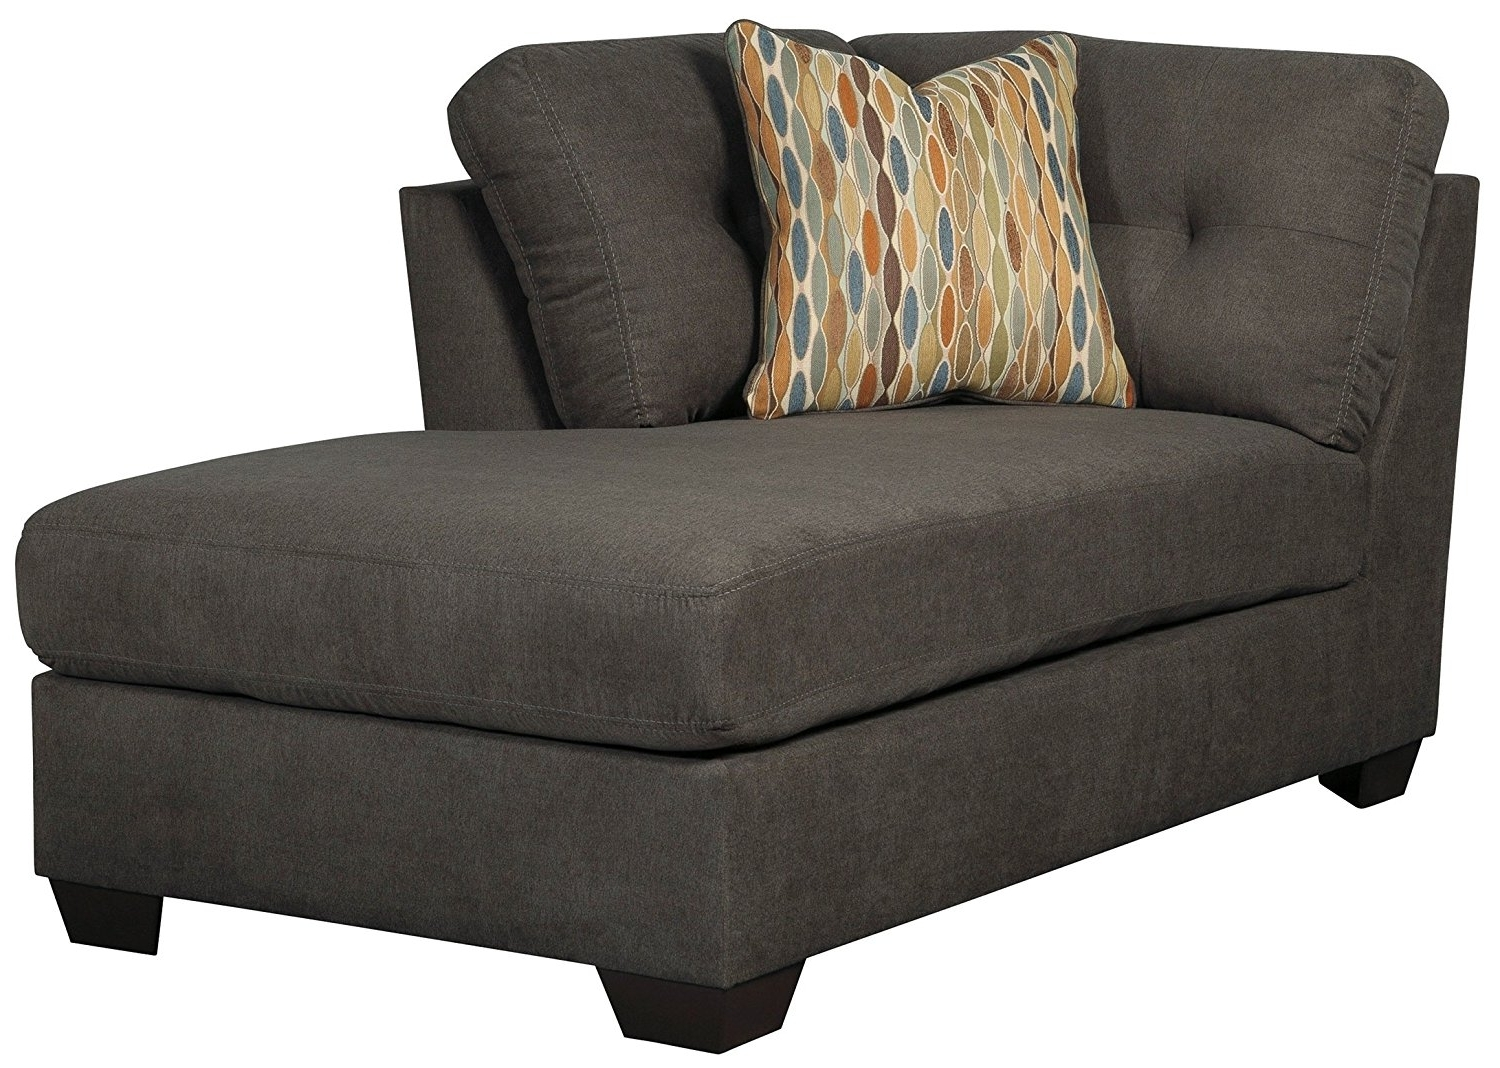 Recent Amazon: Ashley Furniture Delta City Right Corner Chaise Lounge Regarding Ashley Chaise Lounges (View 11 of 15)